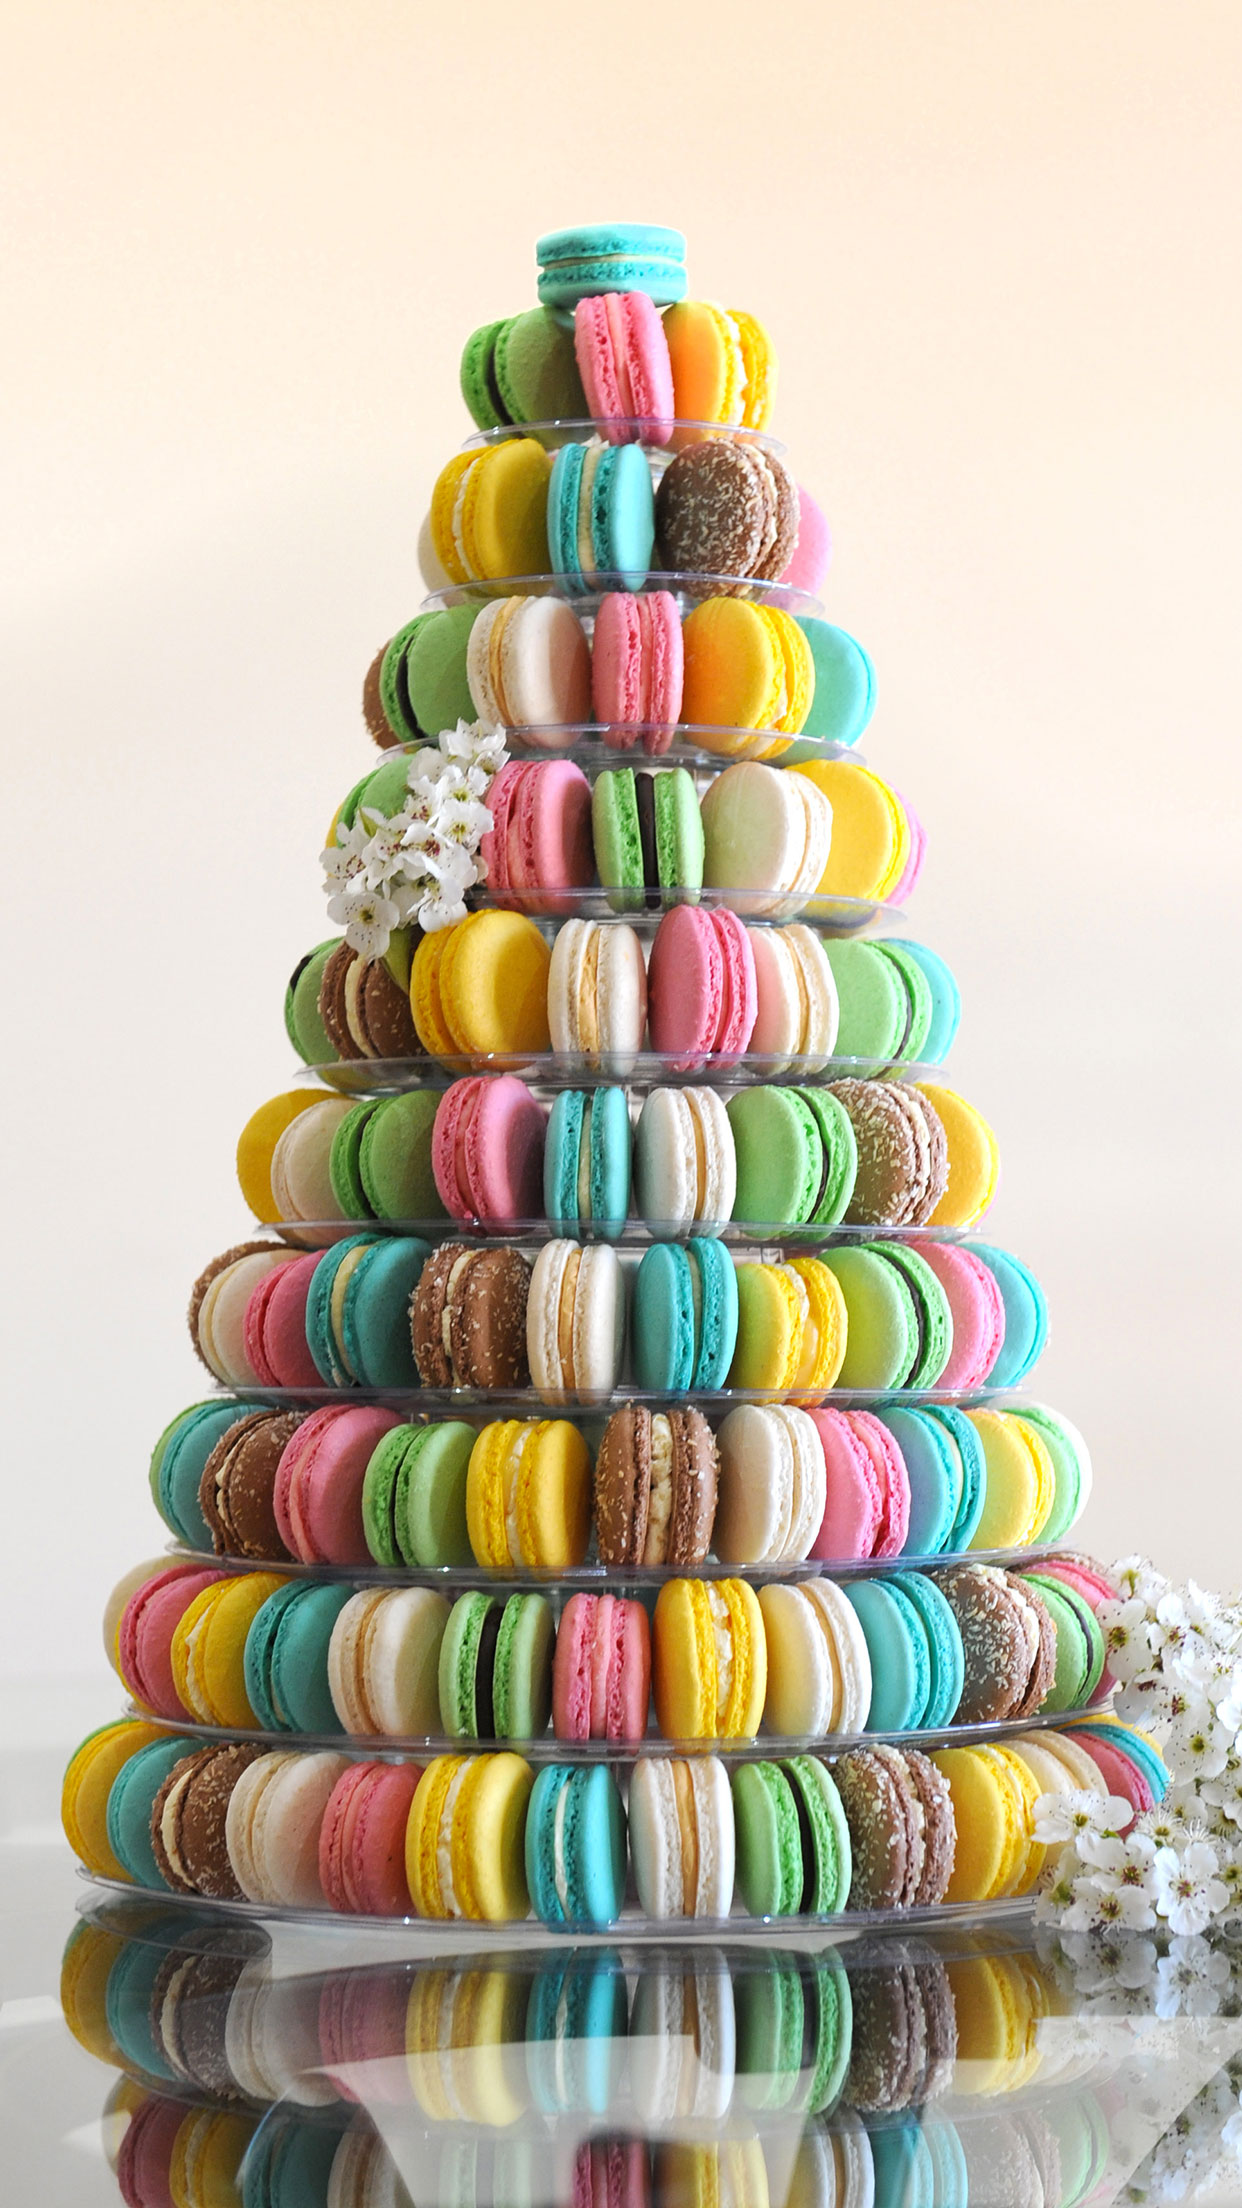 Macaroon Pyramid 3Wallpapers iPhone Parallax Macaroon Pyramid